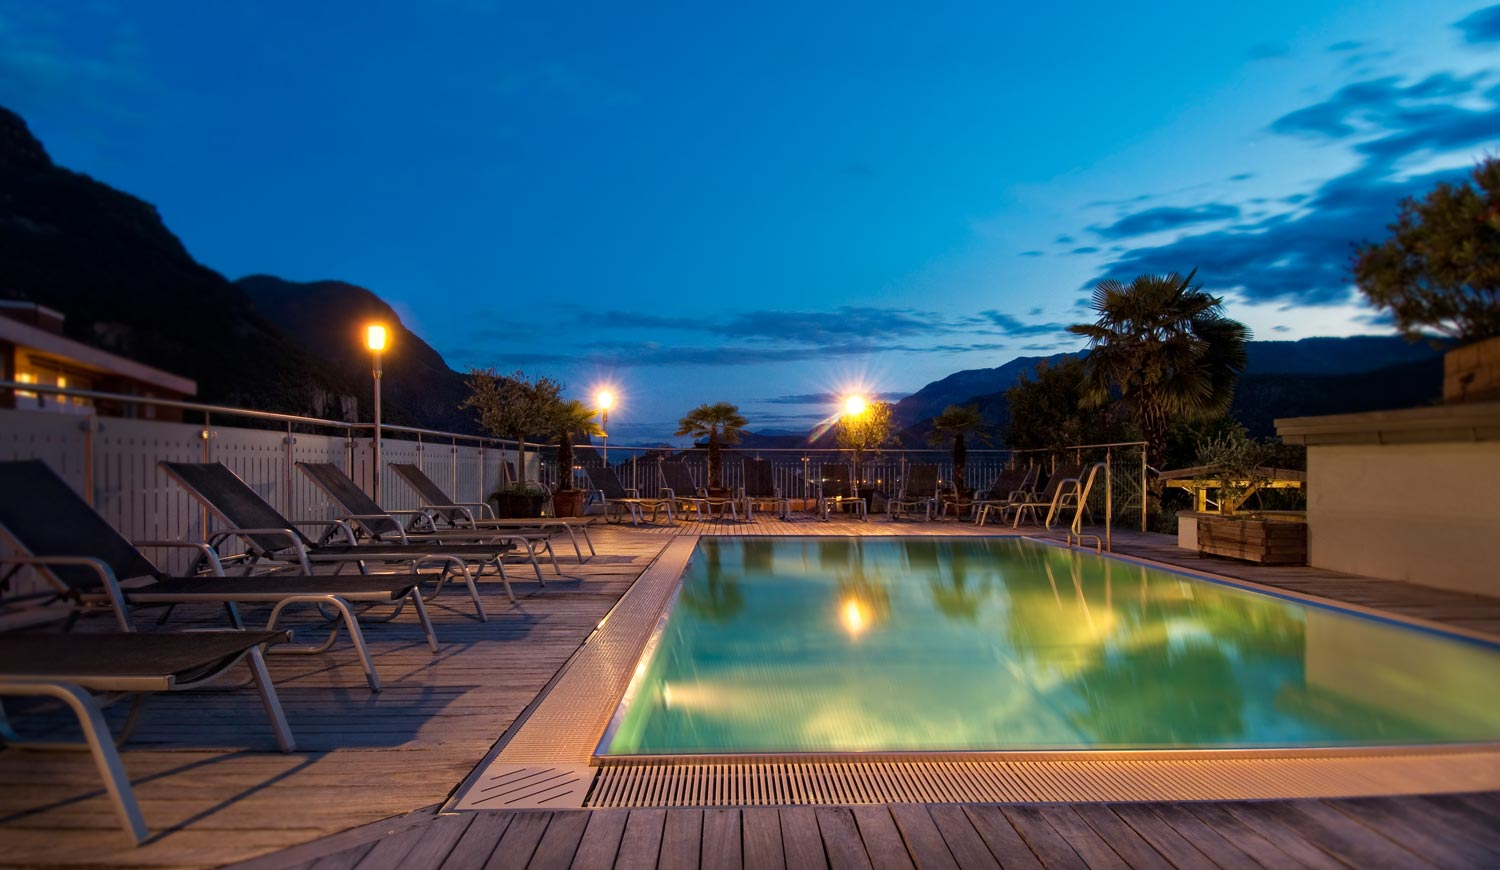 Outdoor pool of Hotel Ideal Park by night